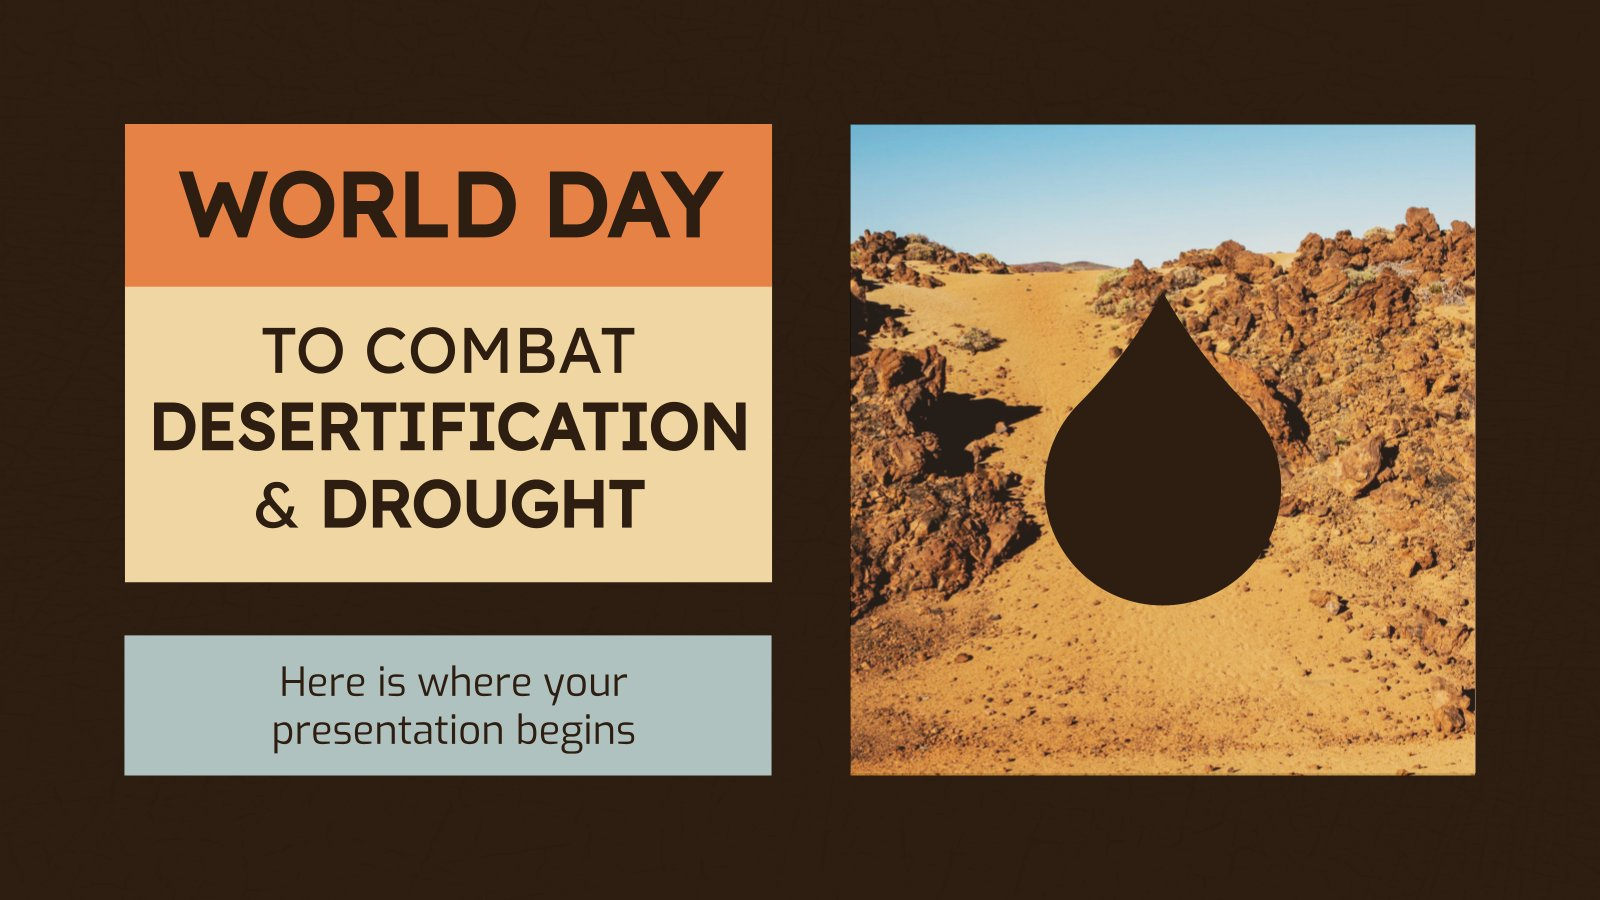 World Day to Combat Desertification presentation template